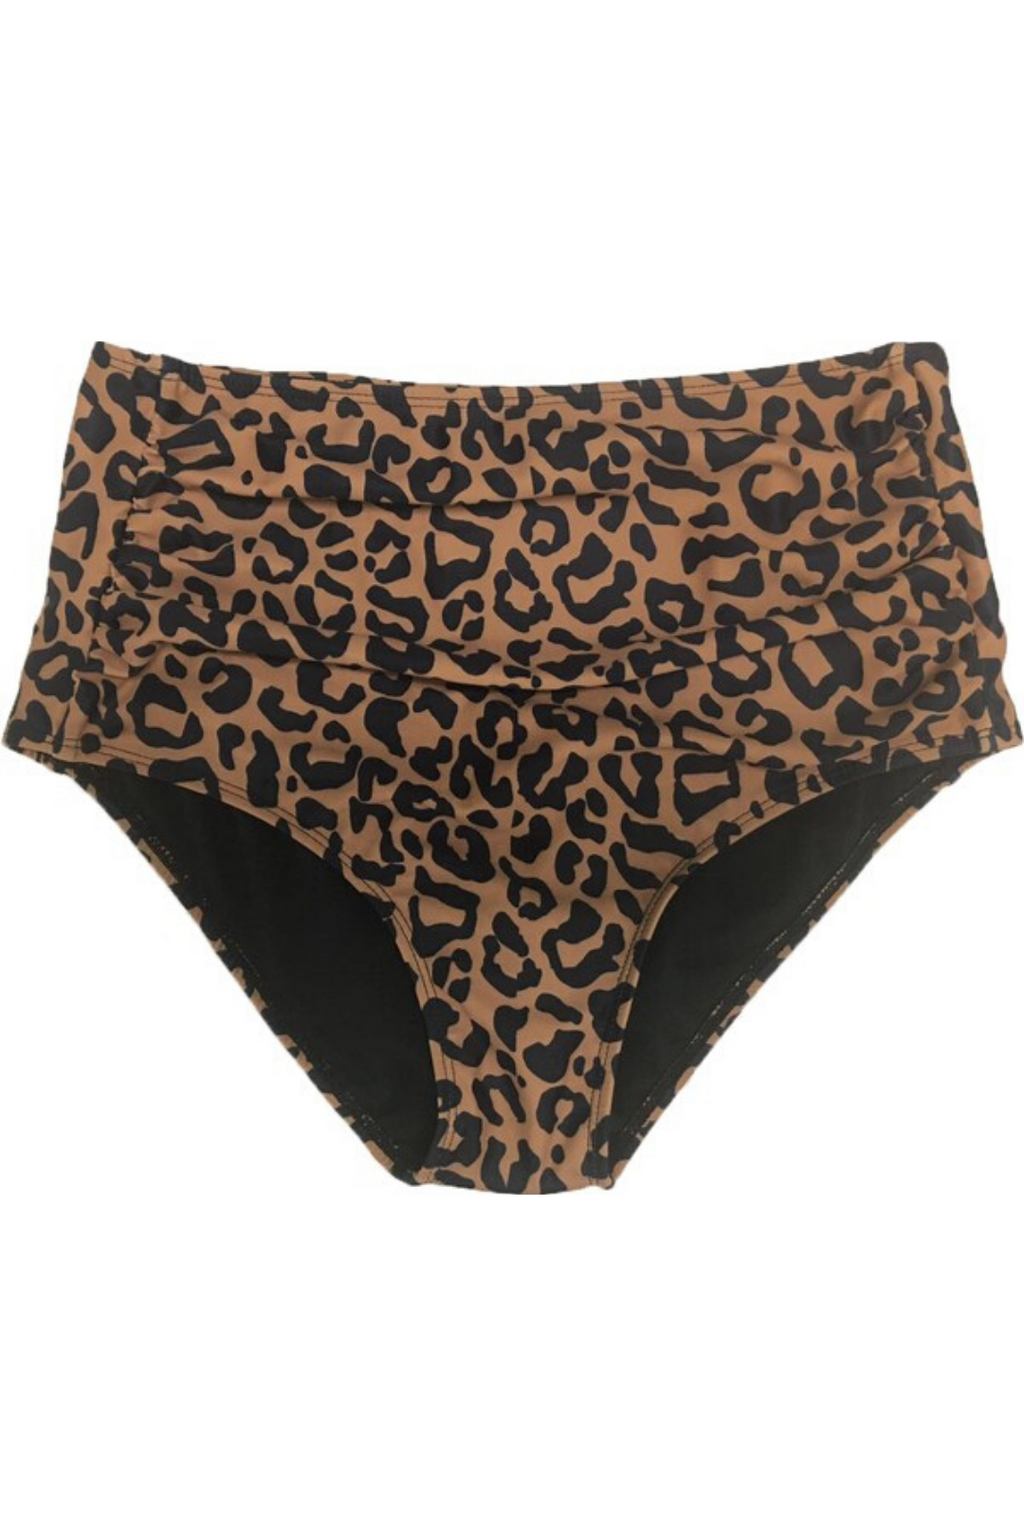 Jane Leopard Swimsuit Bottoms